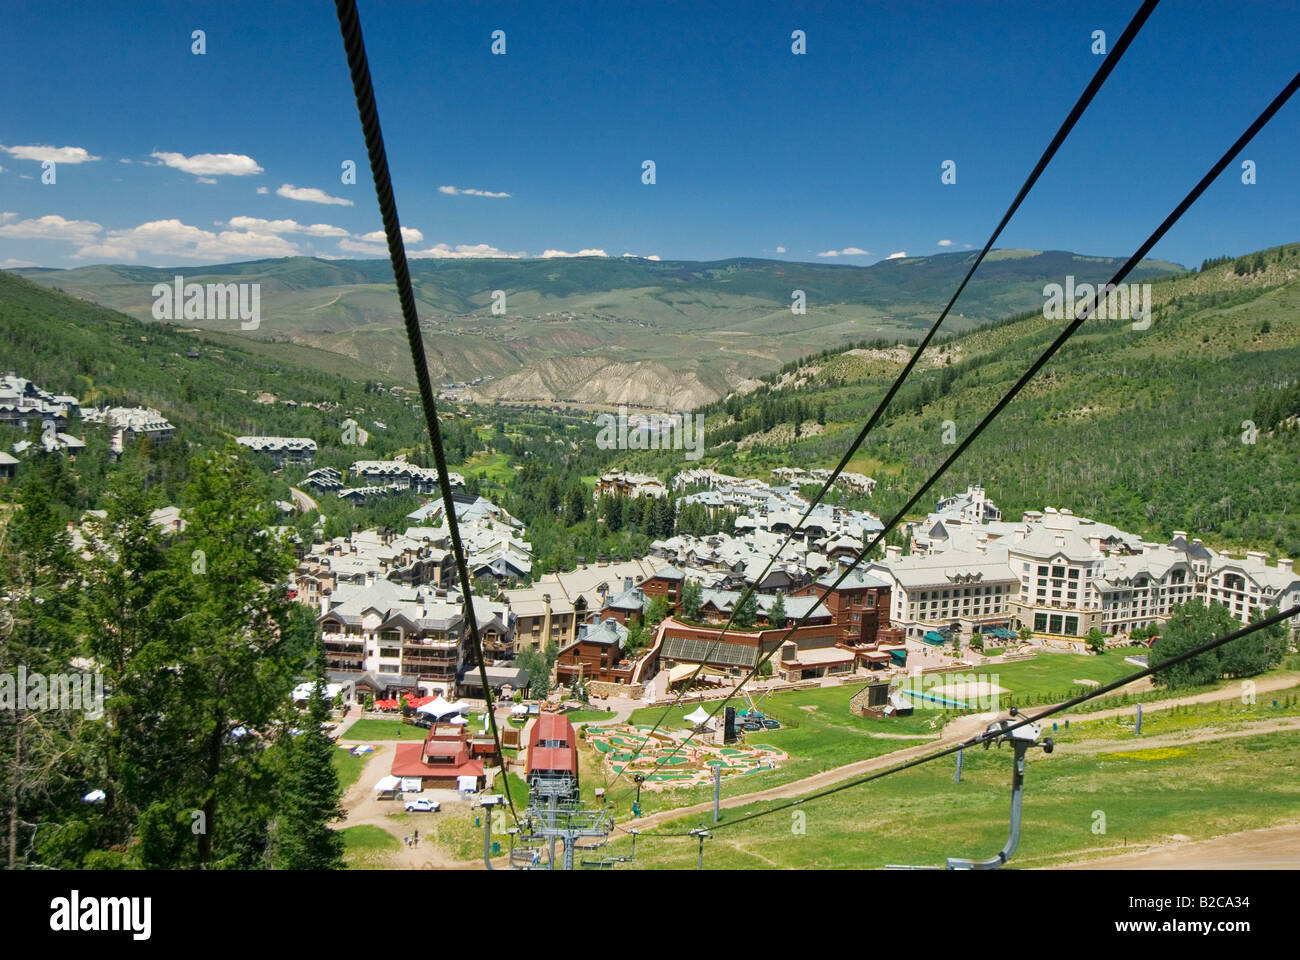 Summer chair lift for hikers and mountain bikers over Beaver Creek Colorado - Stock Image